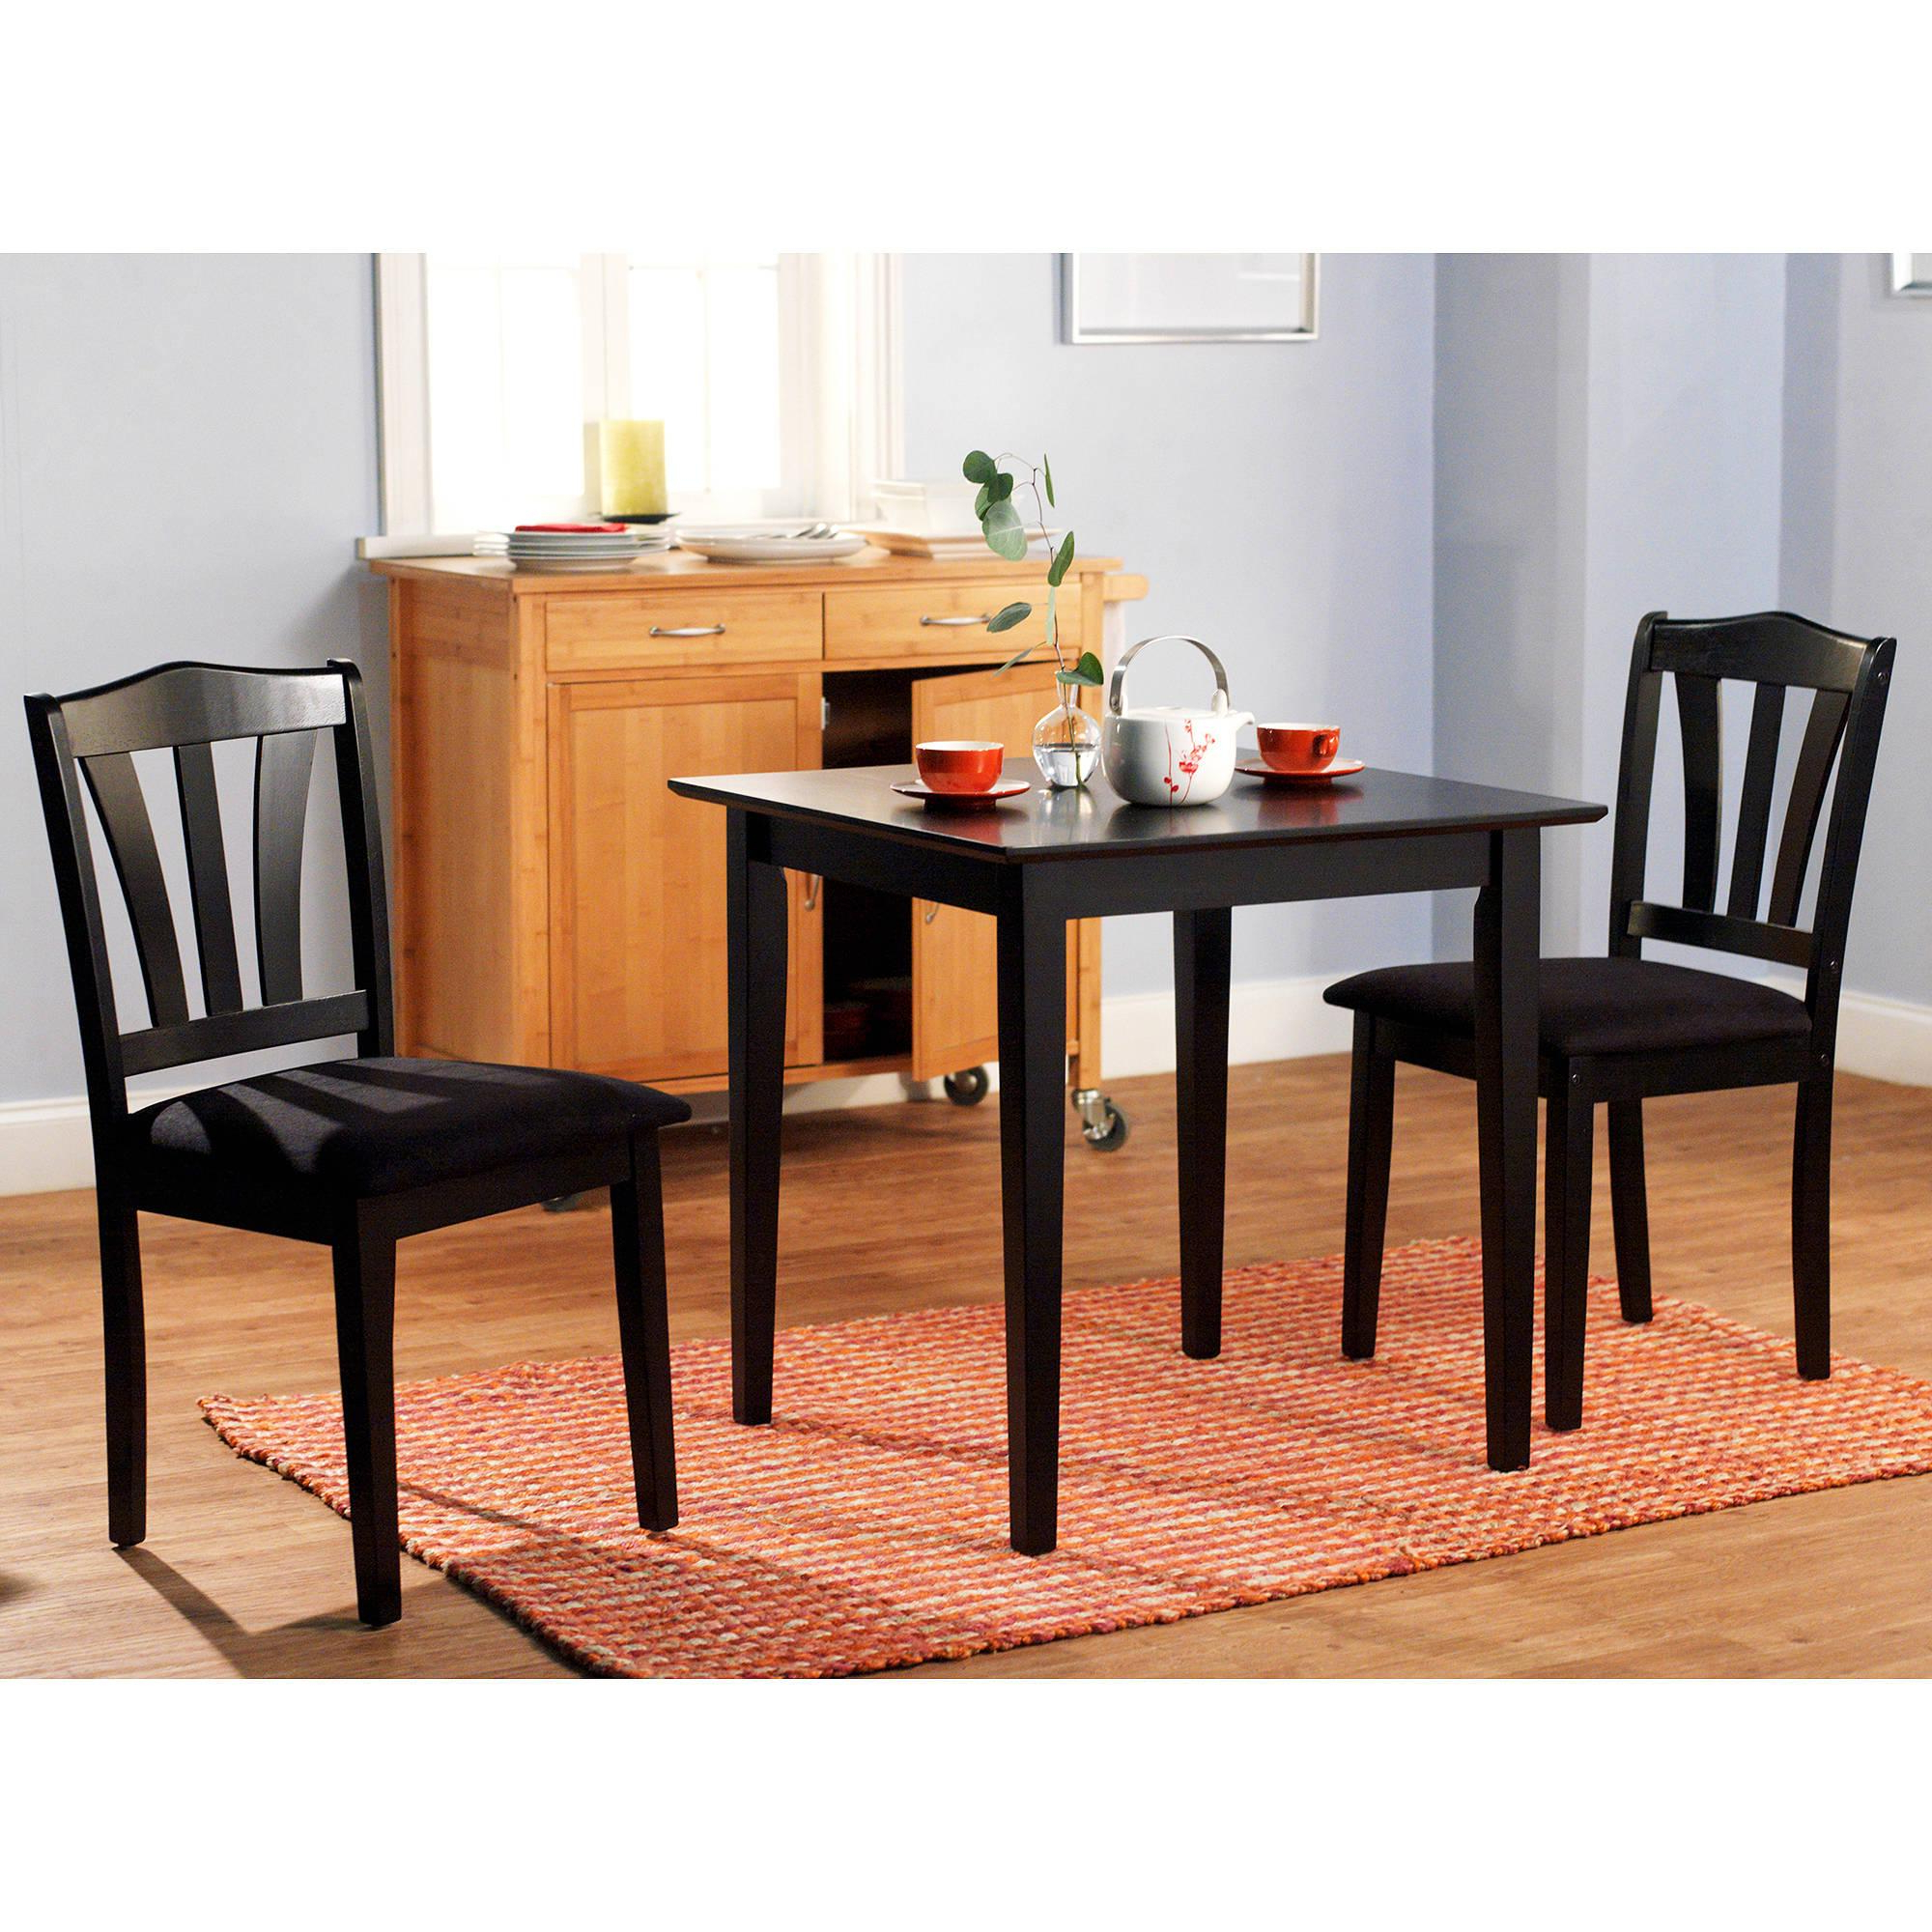 3 Piece Dining Sets Regarding Most Current Details About 3 Piece Dining Set Table 2 Chairs Kitchen Room Wood Furniture  Dinette Modern New (Gallery 11 of 20)